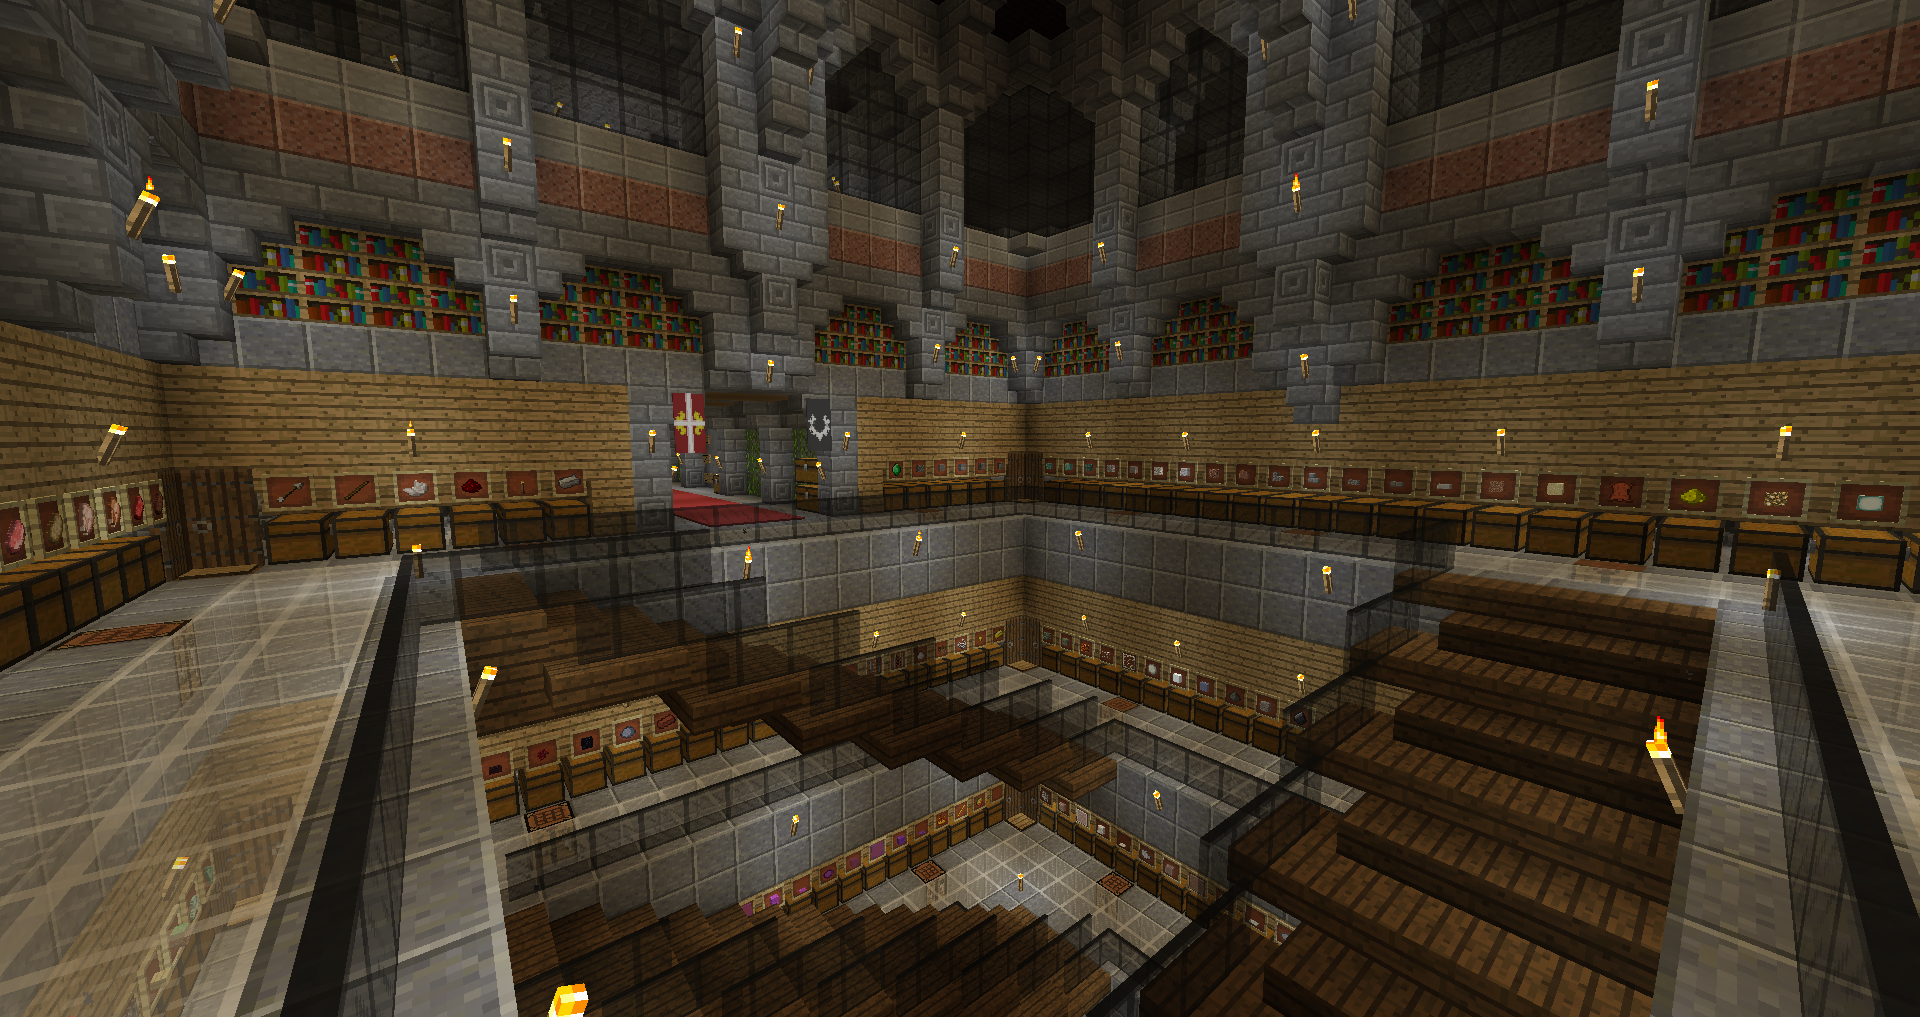 Another shot of our underground warehouse, this time with